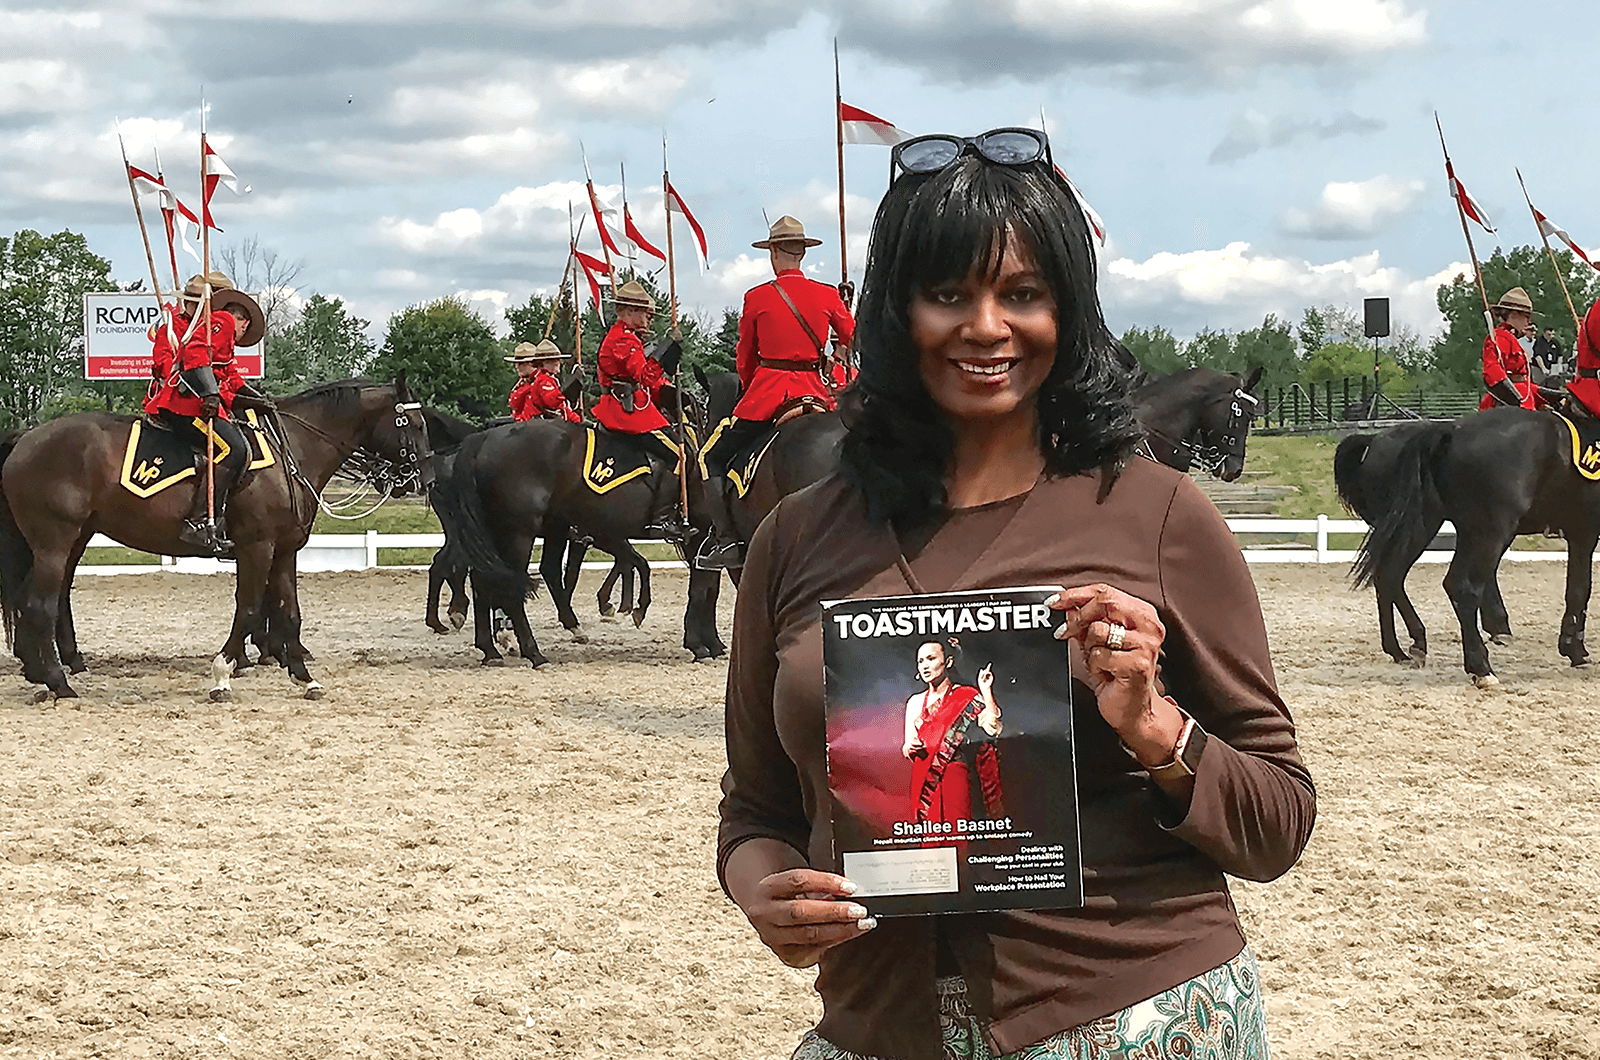 Sunny Fridge, ACB, ALB, of Jackson, Mississippi, enjoys a display by the Royal Canadian Mounted Police in Ottawa, Ontario, Canada.